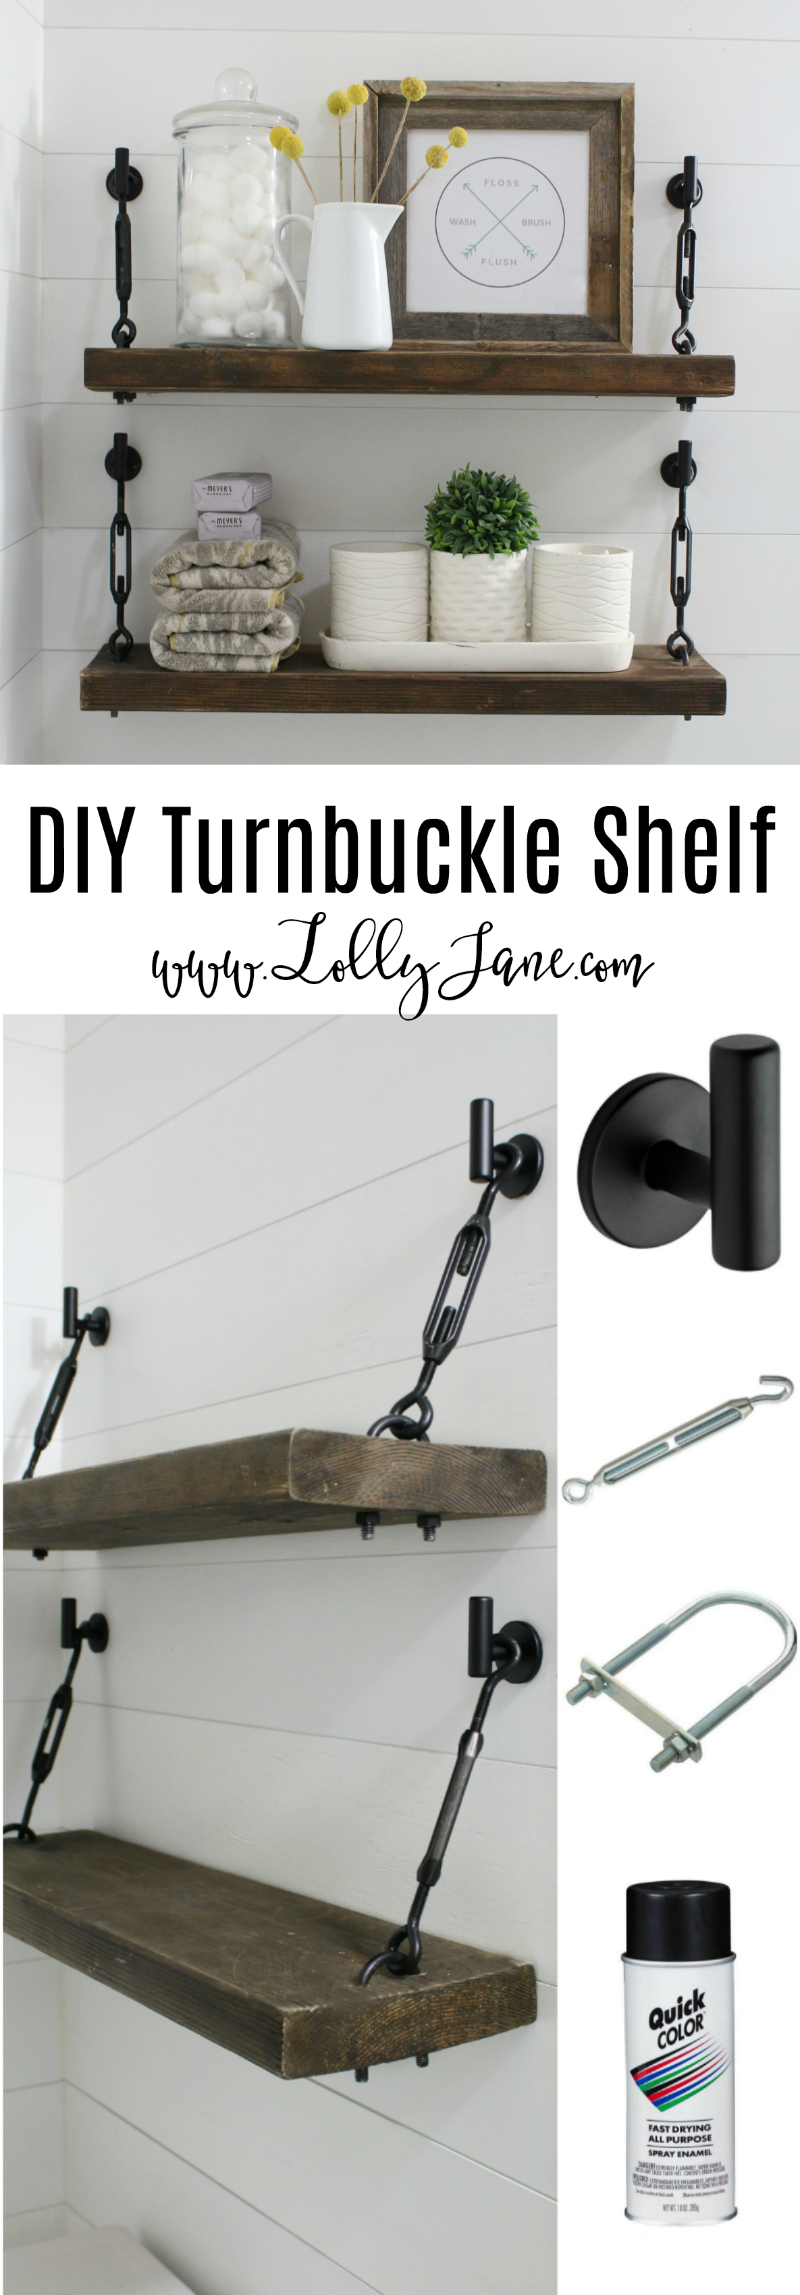 diy turnbuckle shelf great bathroom addition lolly jane floating brackets tutorial learn how easy make these shelves portable kitchen cabinets for entertainment center inch wide